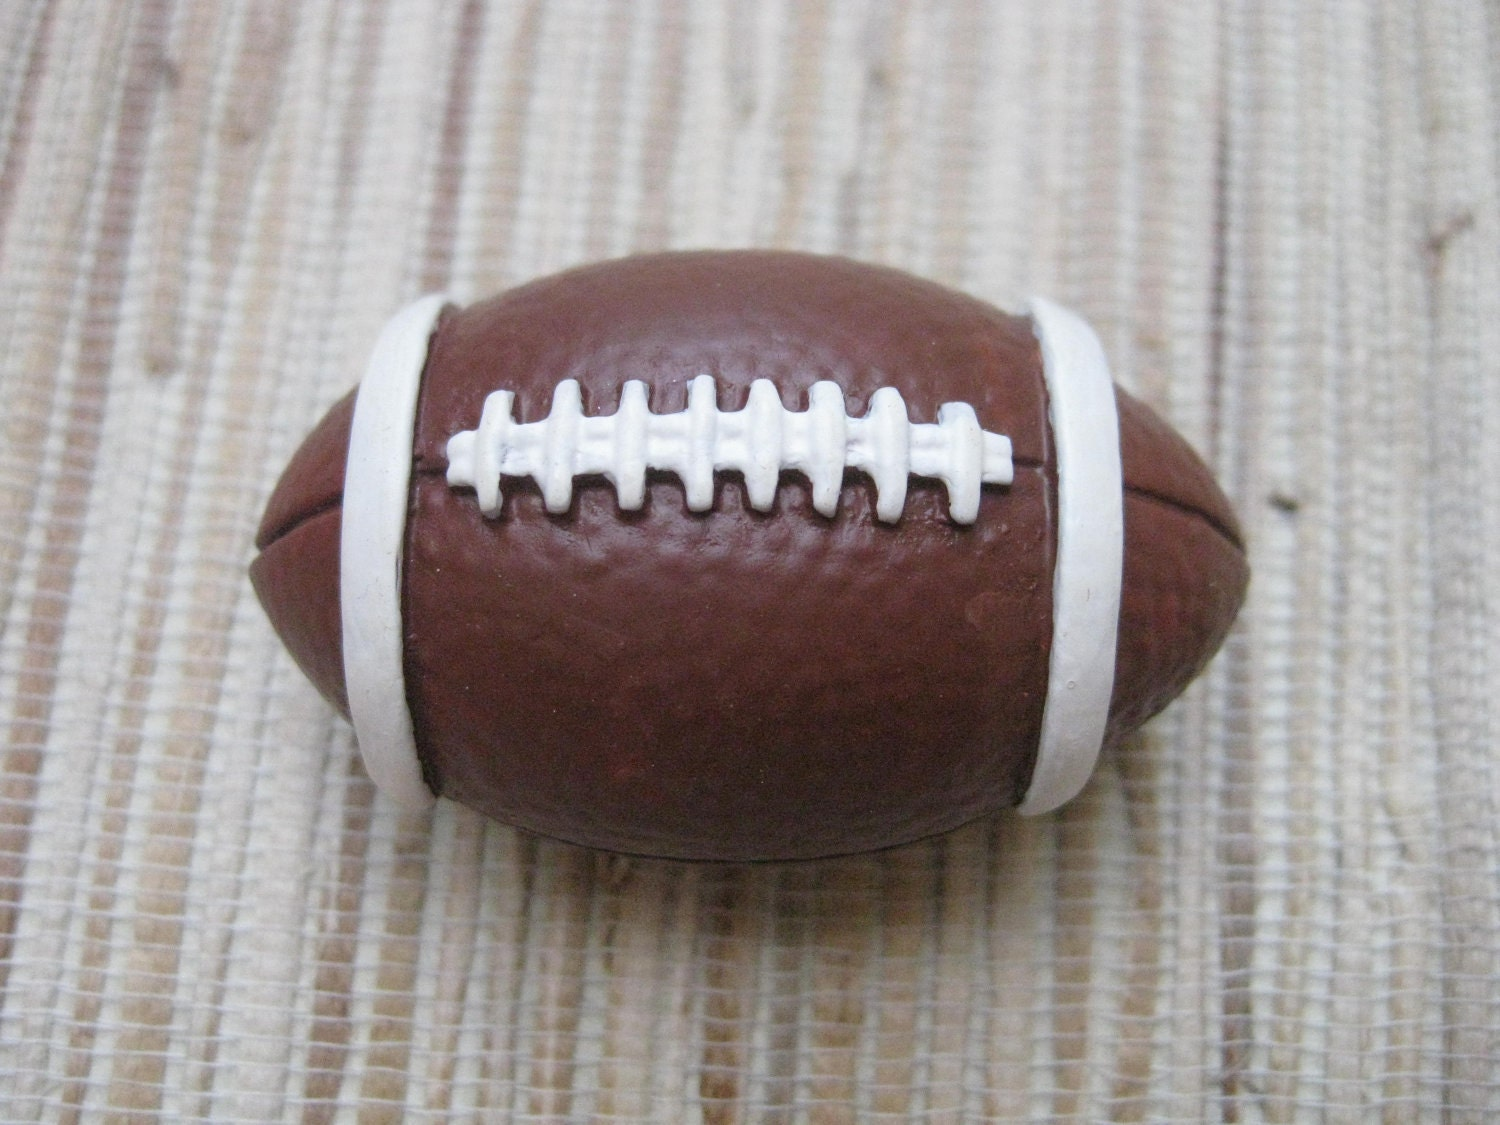 https://www.etsy.com/listing/83270534/2-football-knobs-upcycled-diy-drawer?ref=sr_gallery_1&ga_search_query=teamupcyclers+football&ga_view_type=gallery&ga_ship_to=ZZ&ga_min=0&ga_max=0&ga_search_type=all